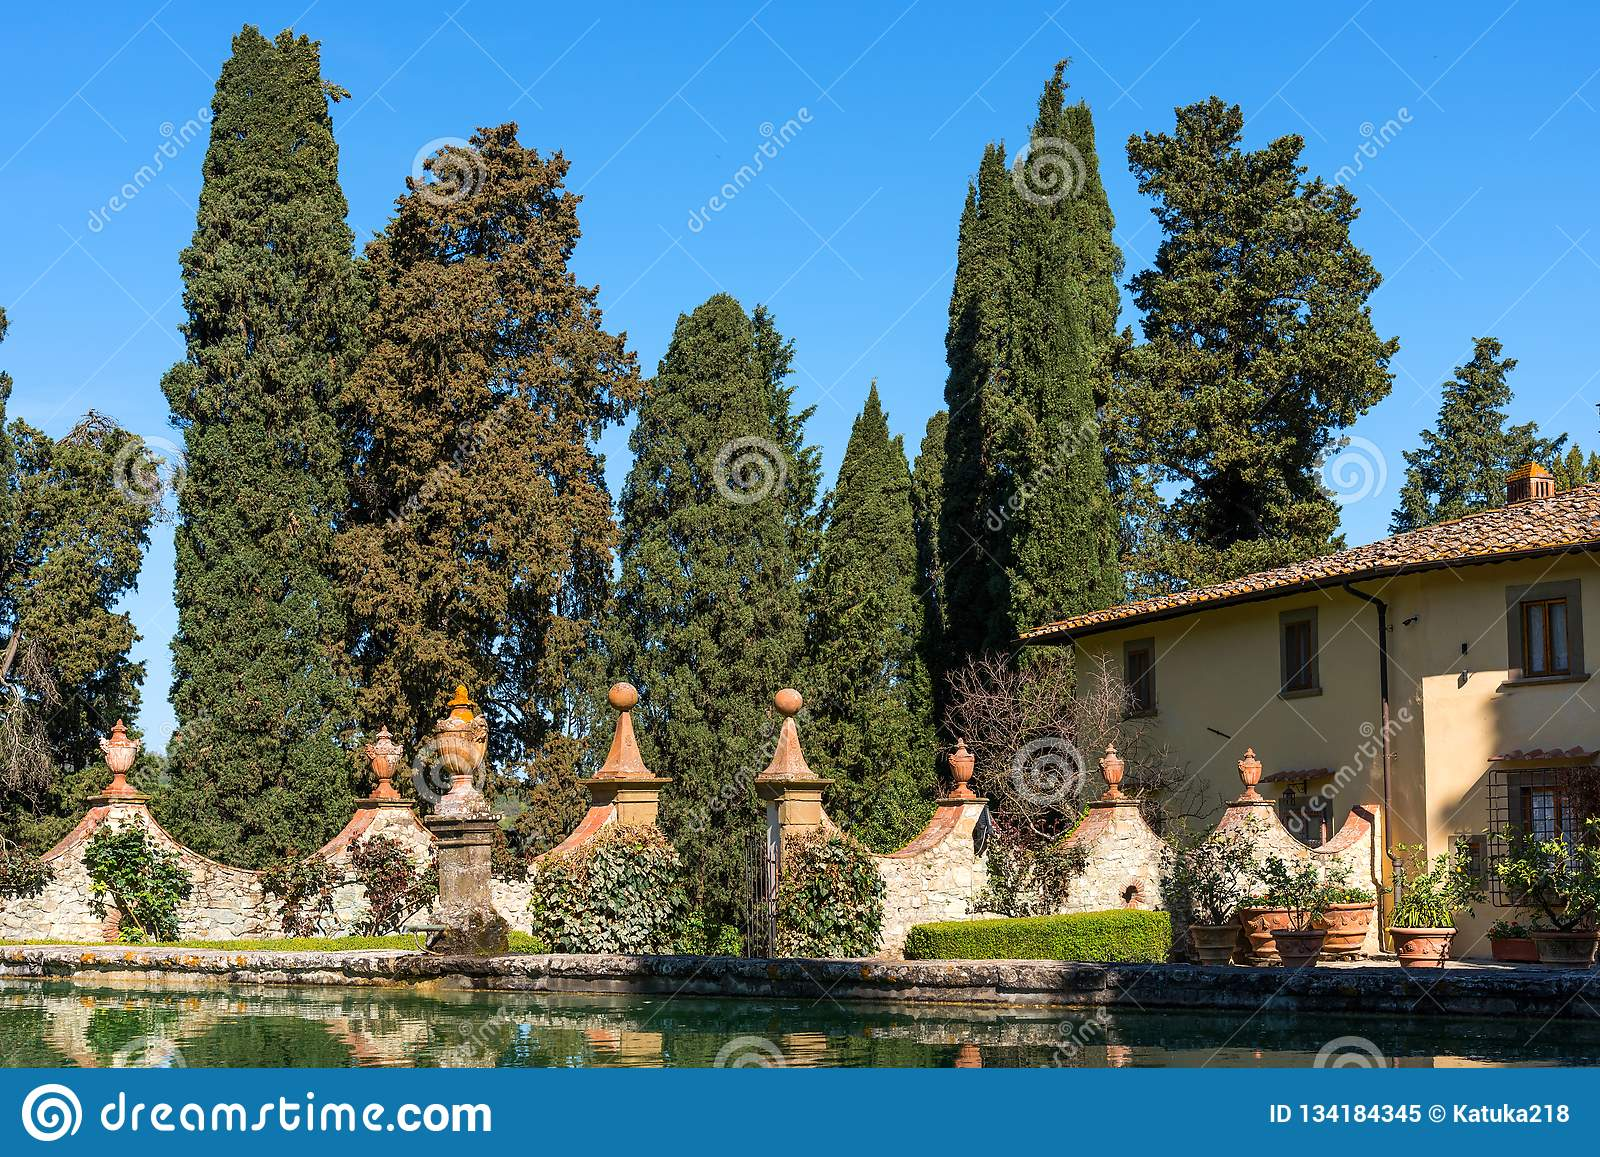 Chianti Region, Italy - April 20, 2018: The Castle of Verrazzano in Greve in Chianti, in the heart of the Chianti Classico area,